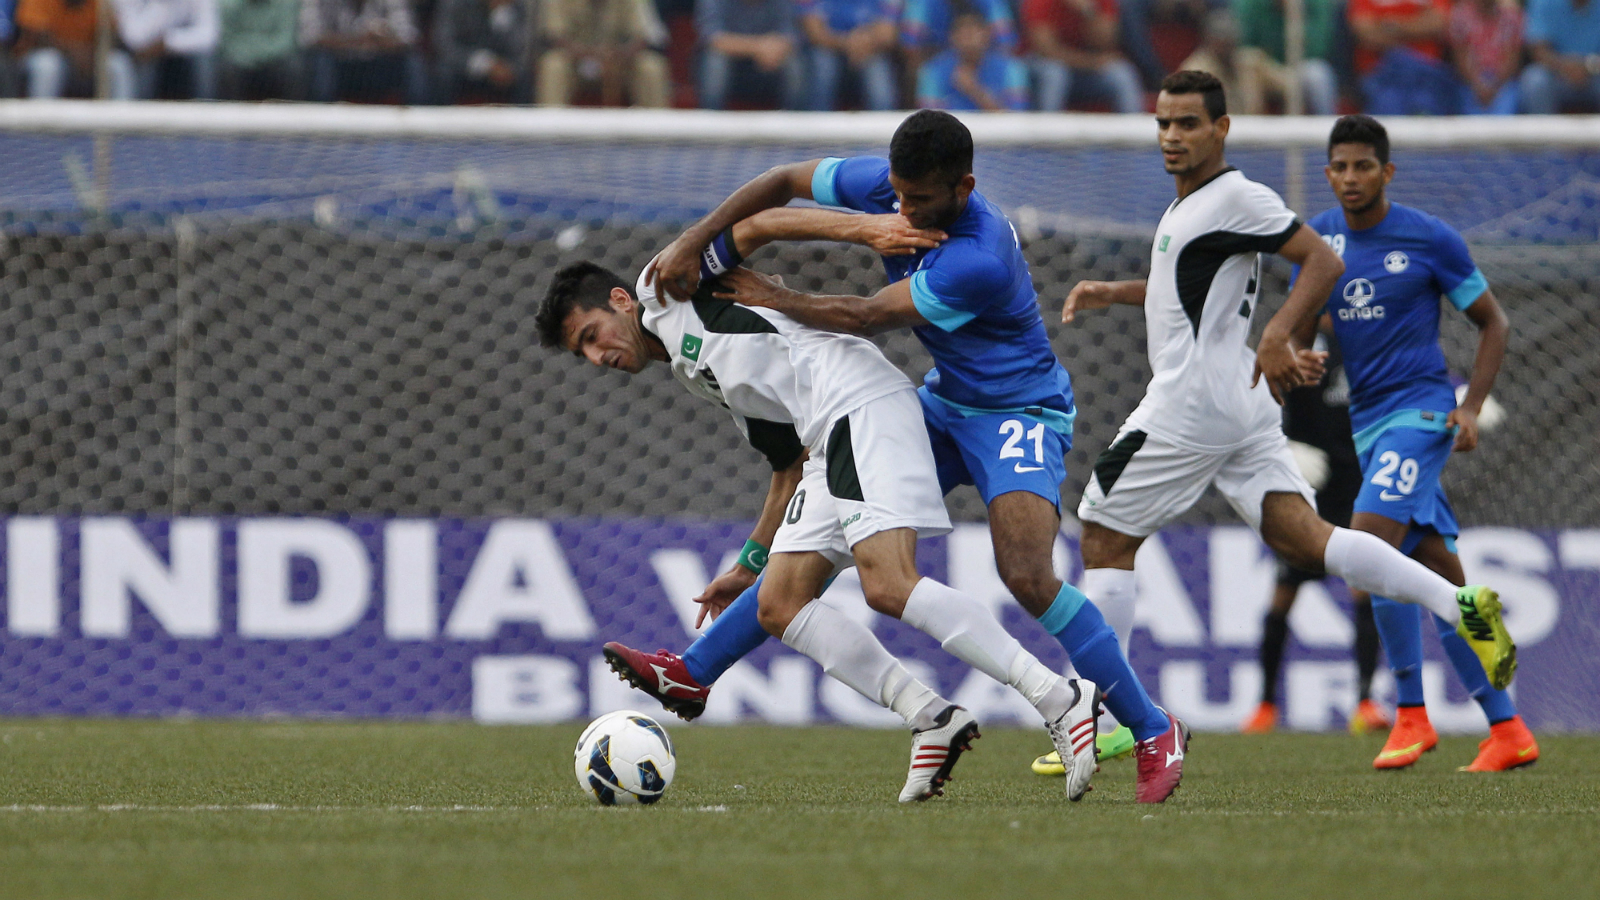 Pakistan team captain Kaleem Ullah, left, and India's Pronoy Halder (21) jostle to get control of the ball during the first match of the two-match friendly soccer tournament between Indian and Pakistan in Bangalore, India, Sunday, Aug. 17, 2014. India won the match 1-0.